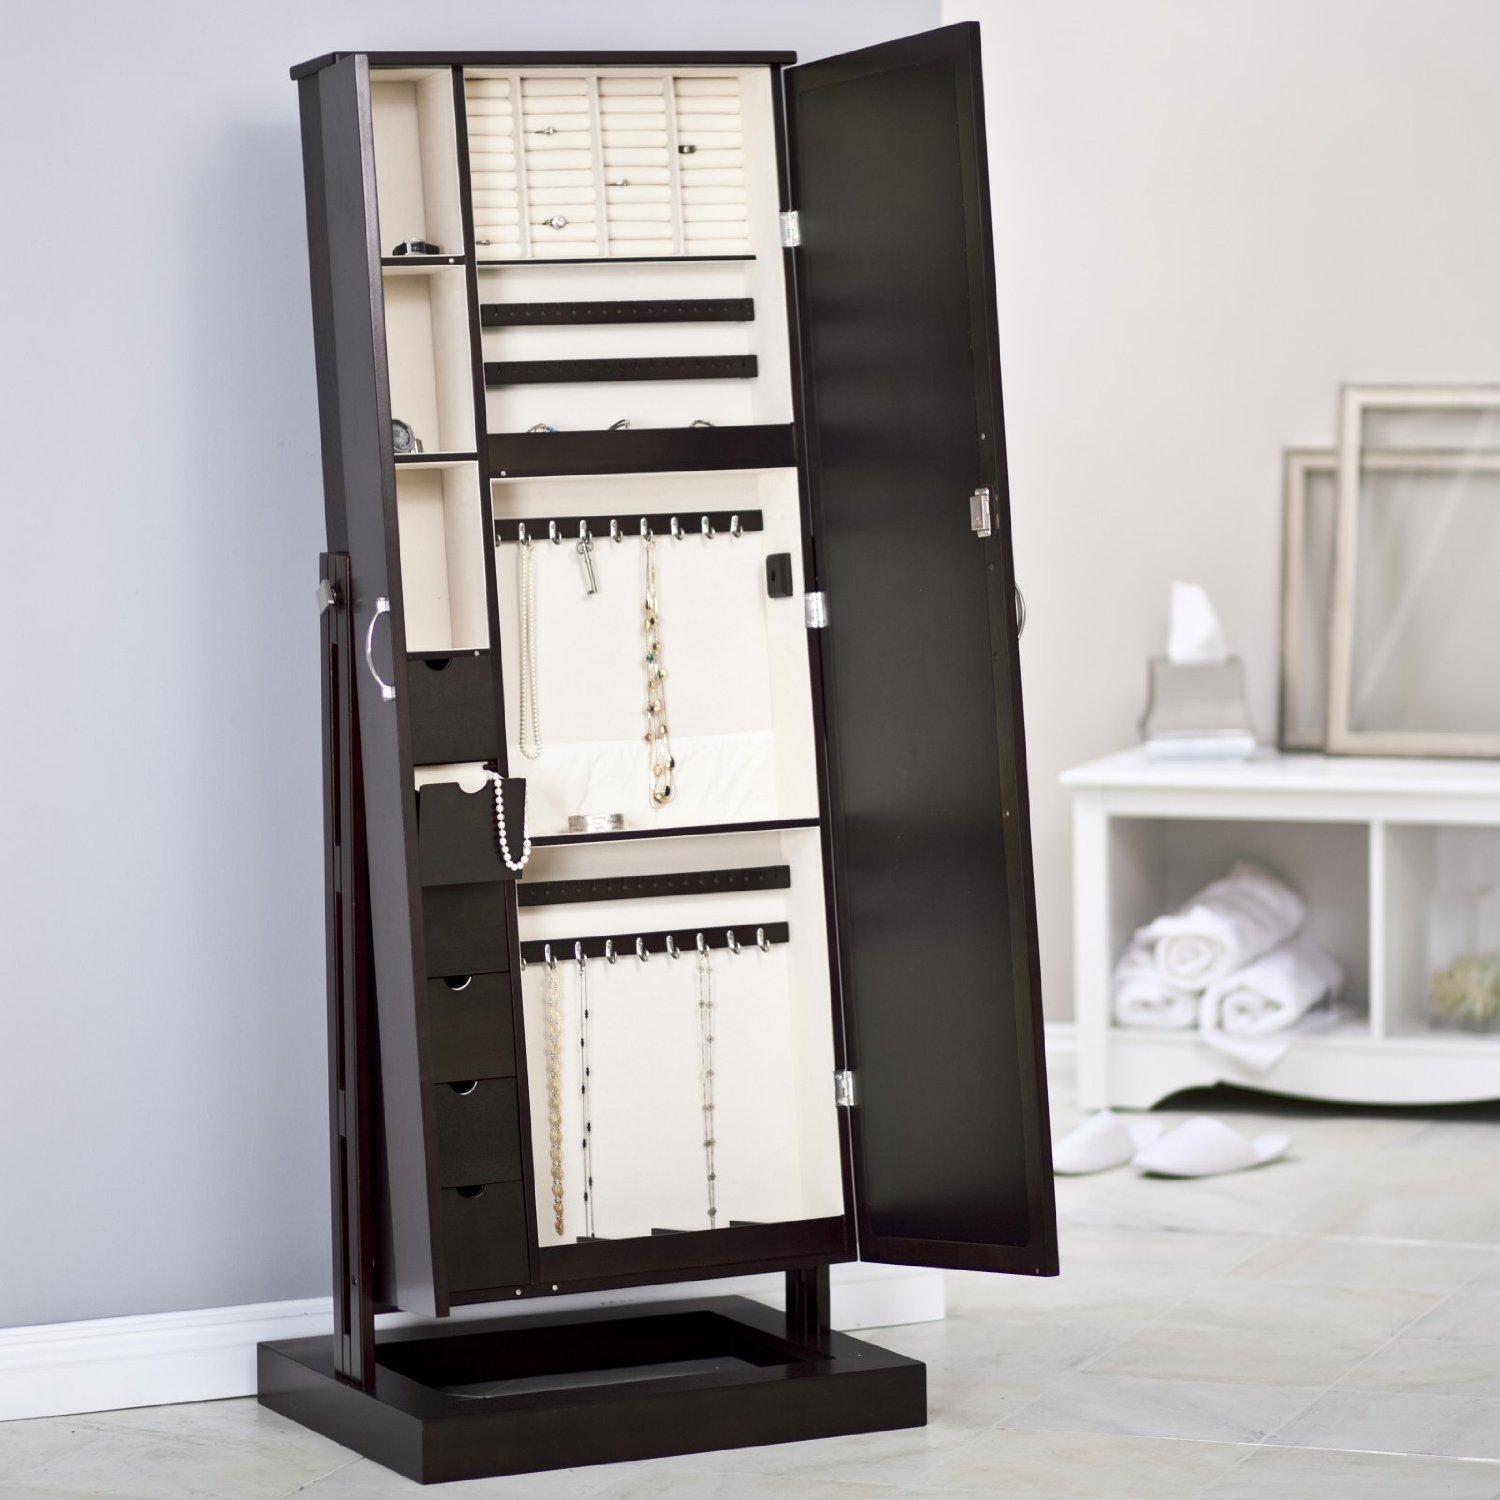 Charming Wooden Standing Mirror Jewelry Armoire In Black With Silver Handle  For Home Furniture Ideas